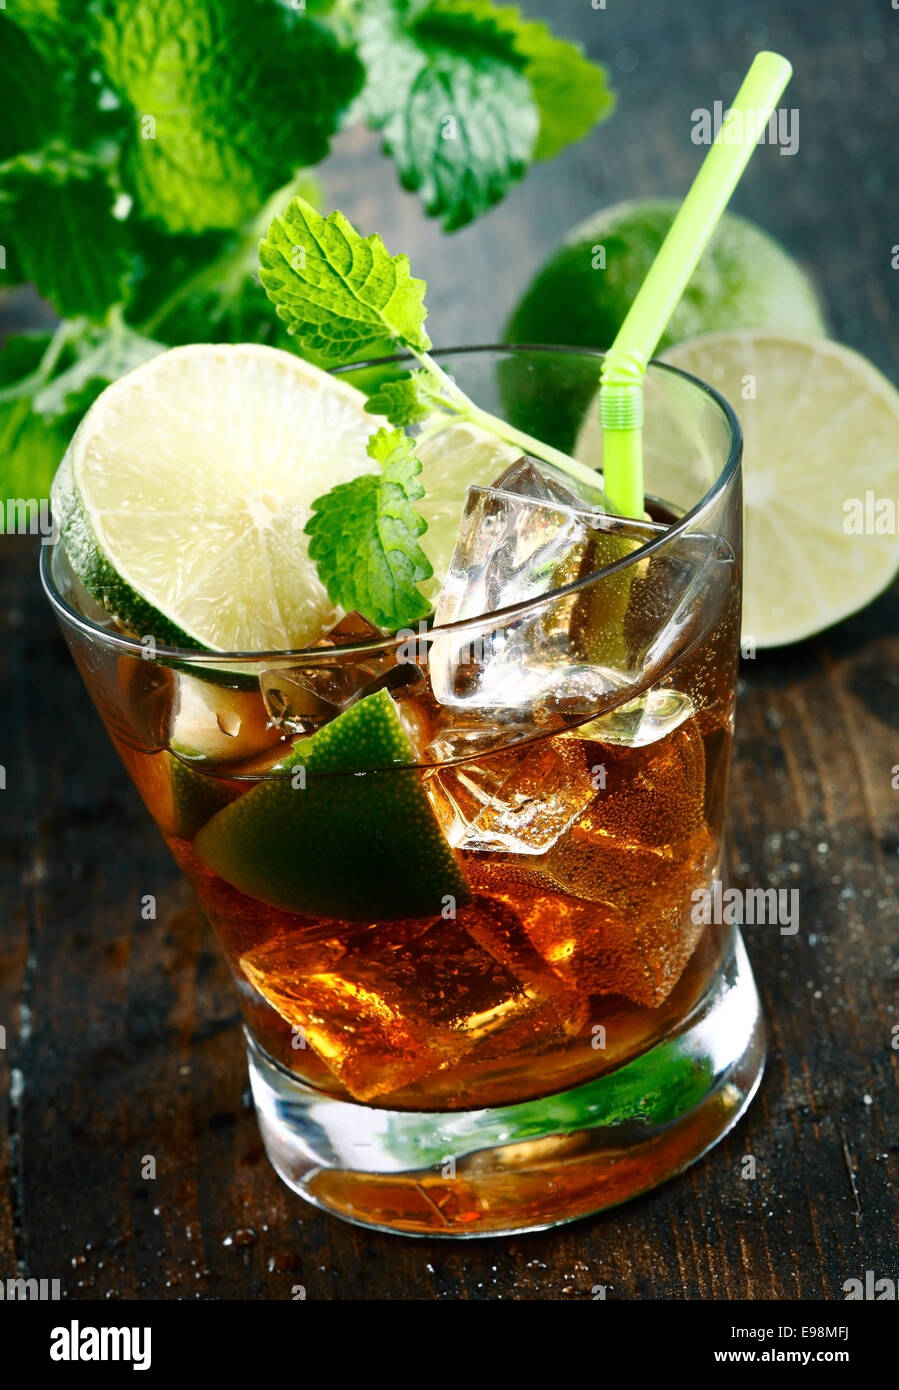 Cuba Libre Drink with lime and Cola,on a wooden plate - Stock Image